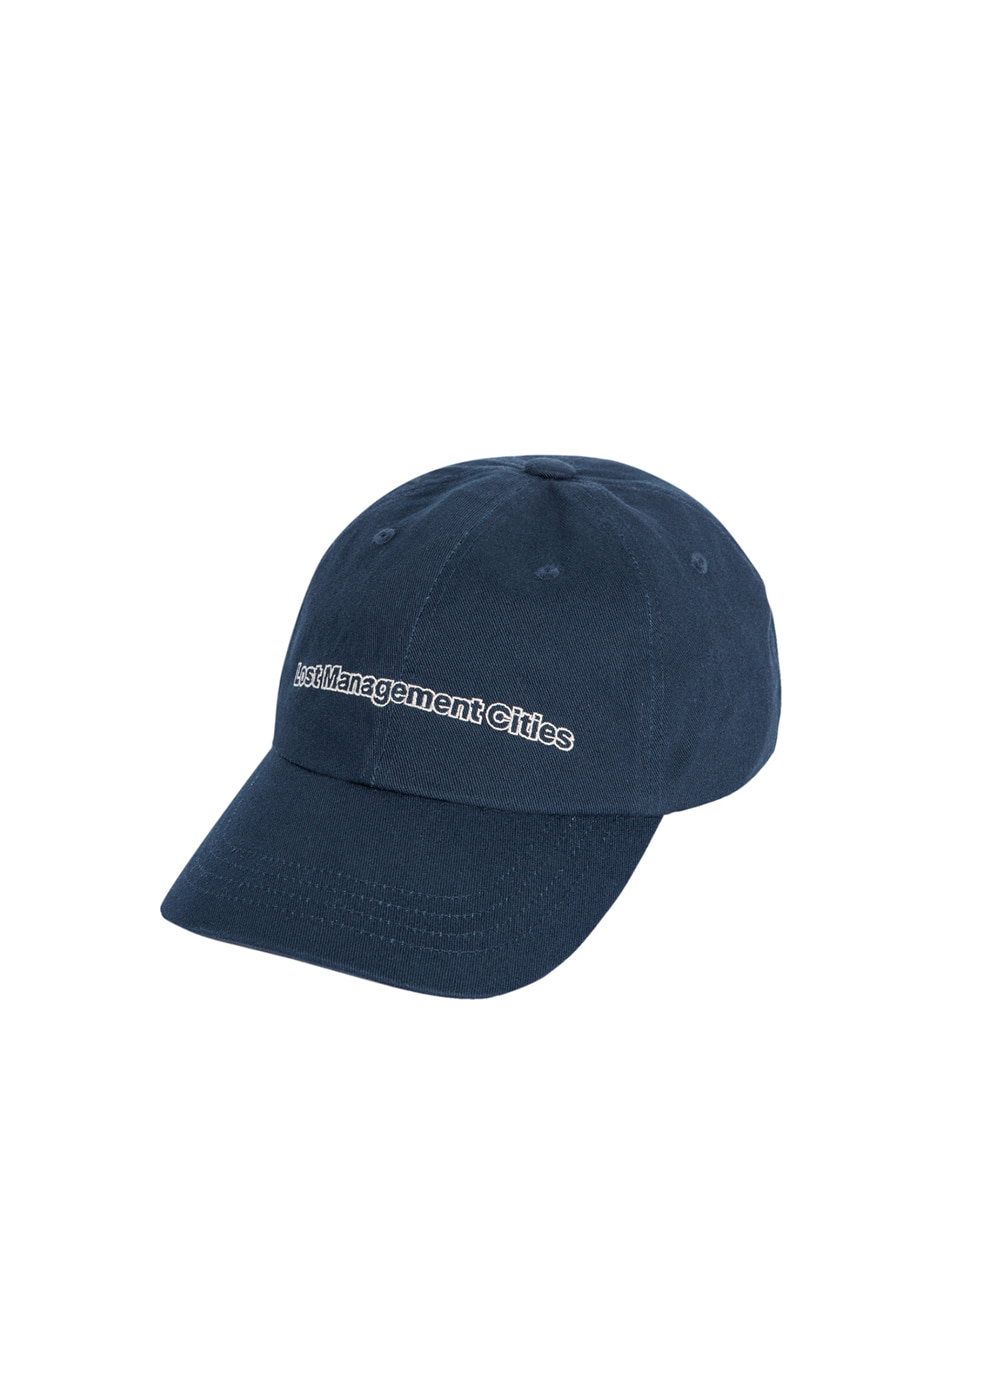 LMC FN OUTLINE 6 PANEL CAP navy